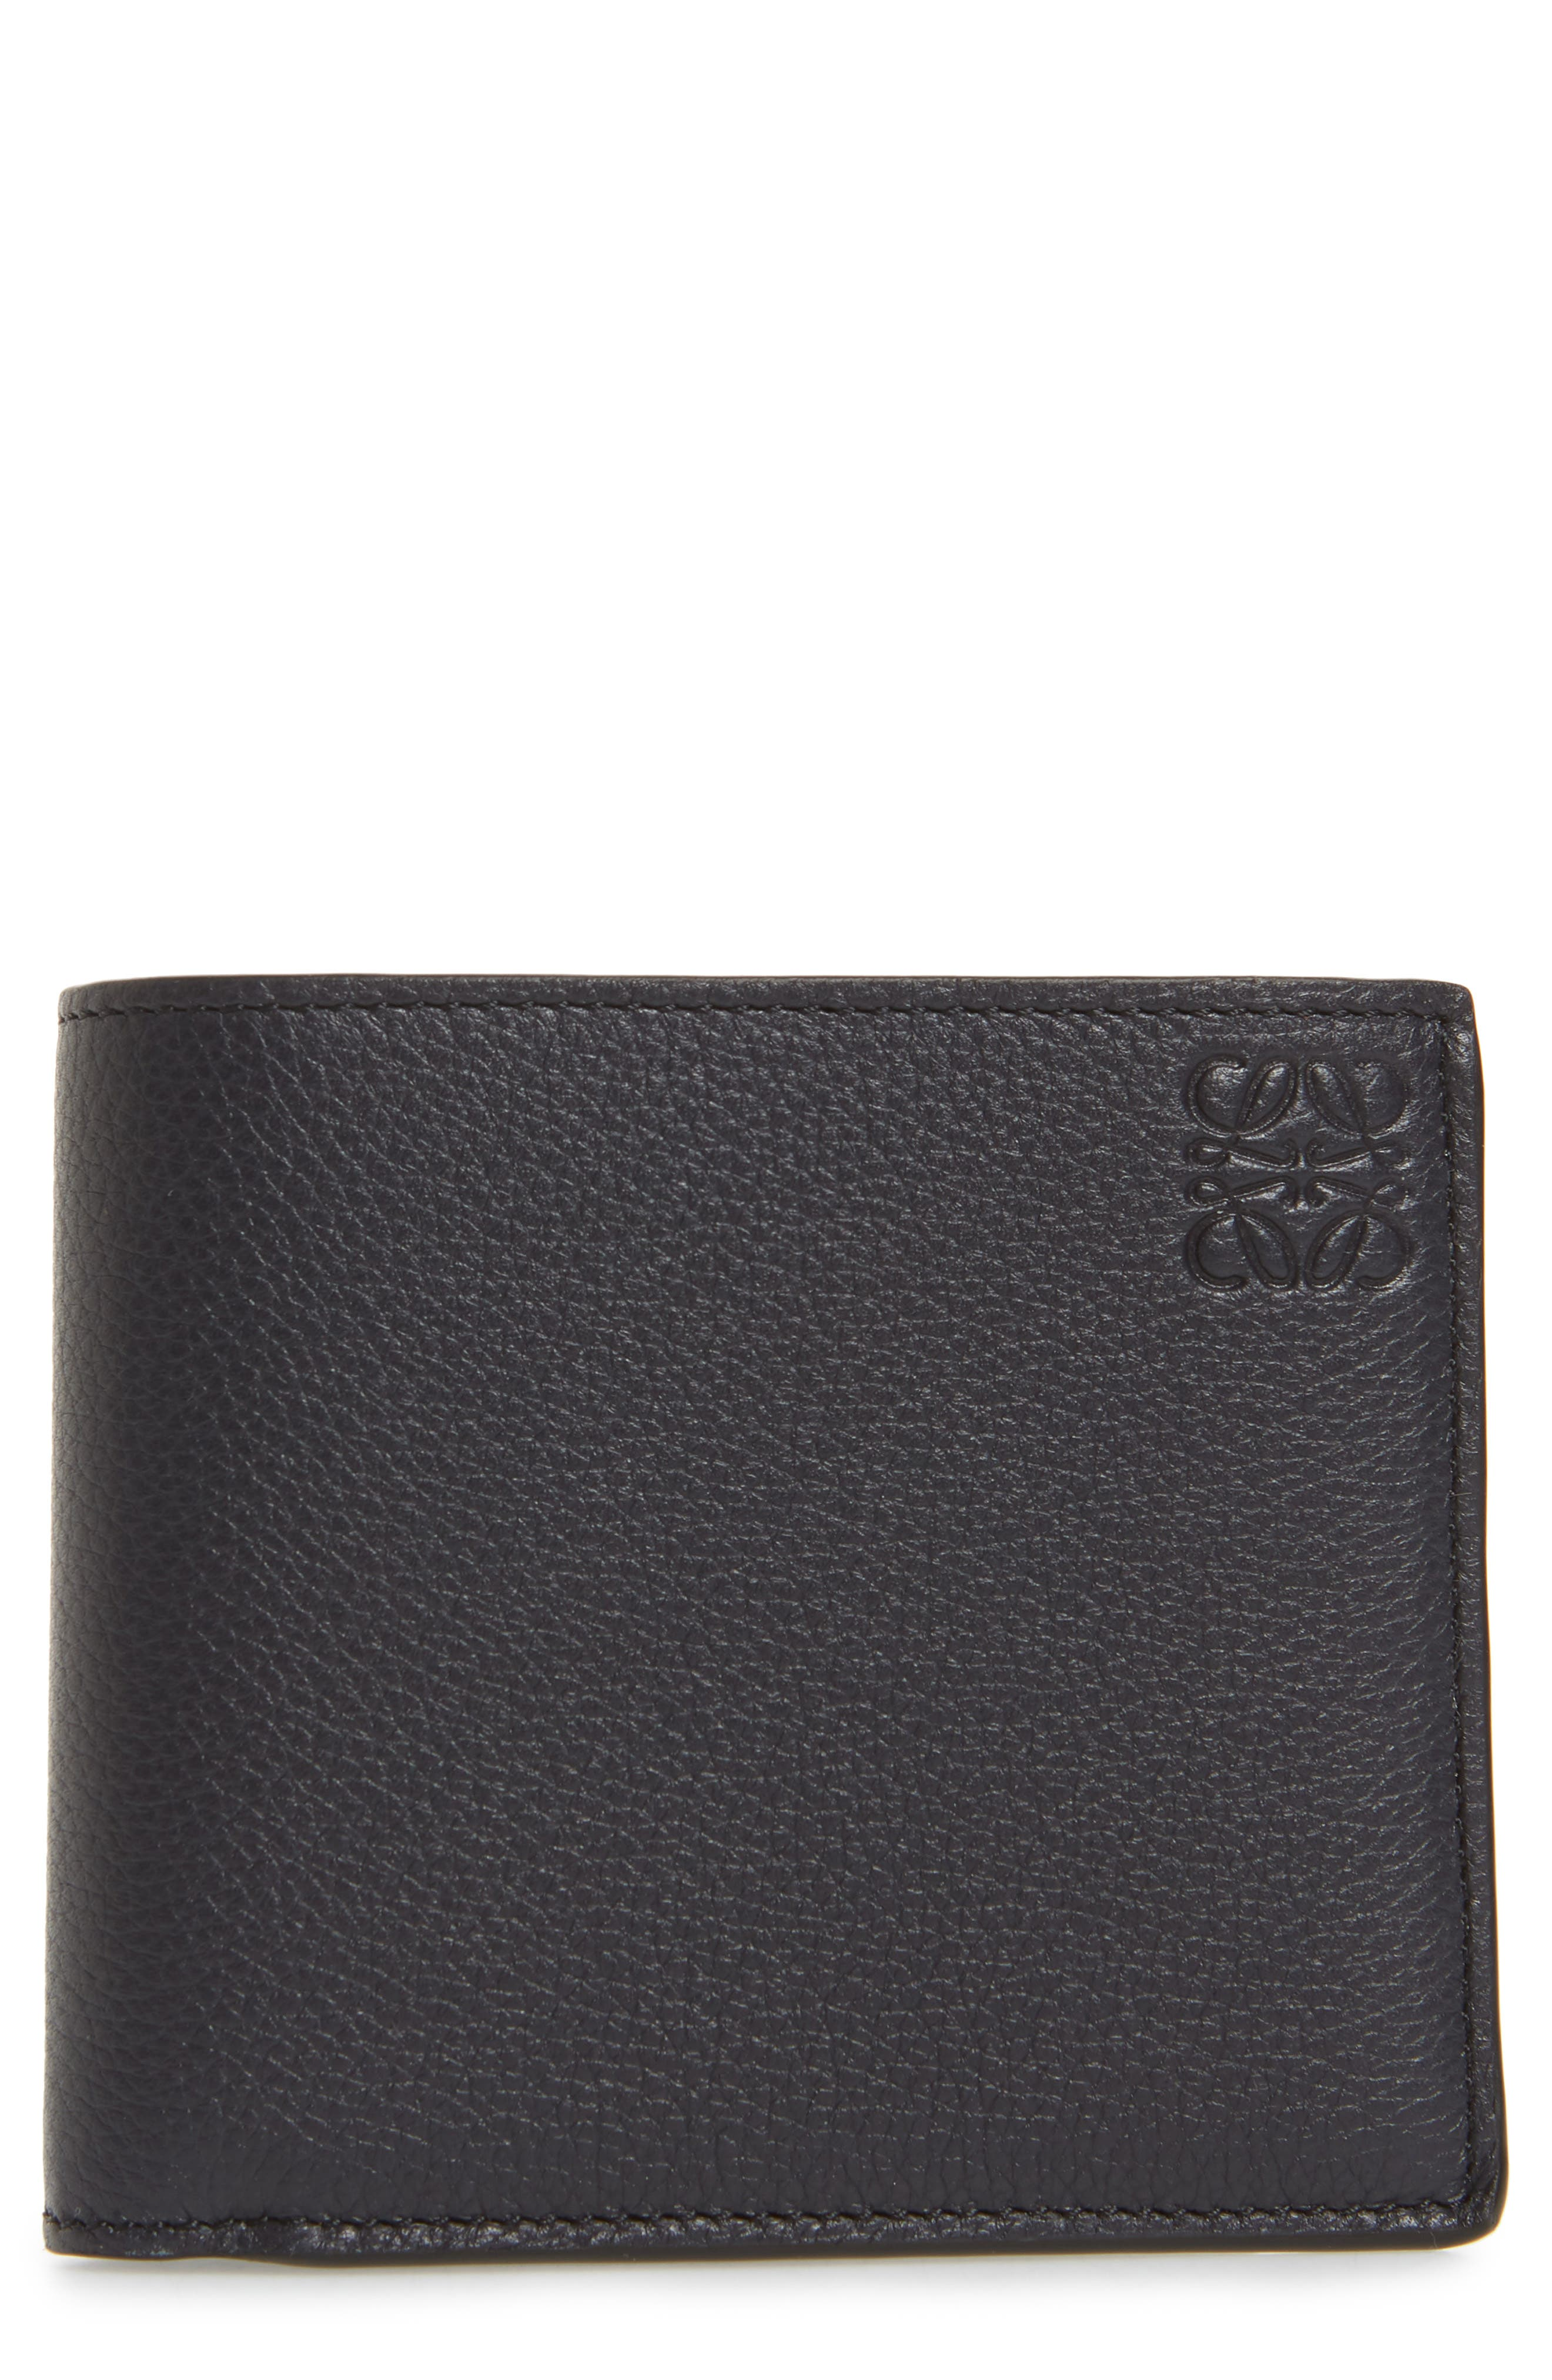 Calfskin Leather Bifold Wallet,                             Main thumbnail 1, color,                             405